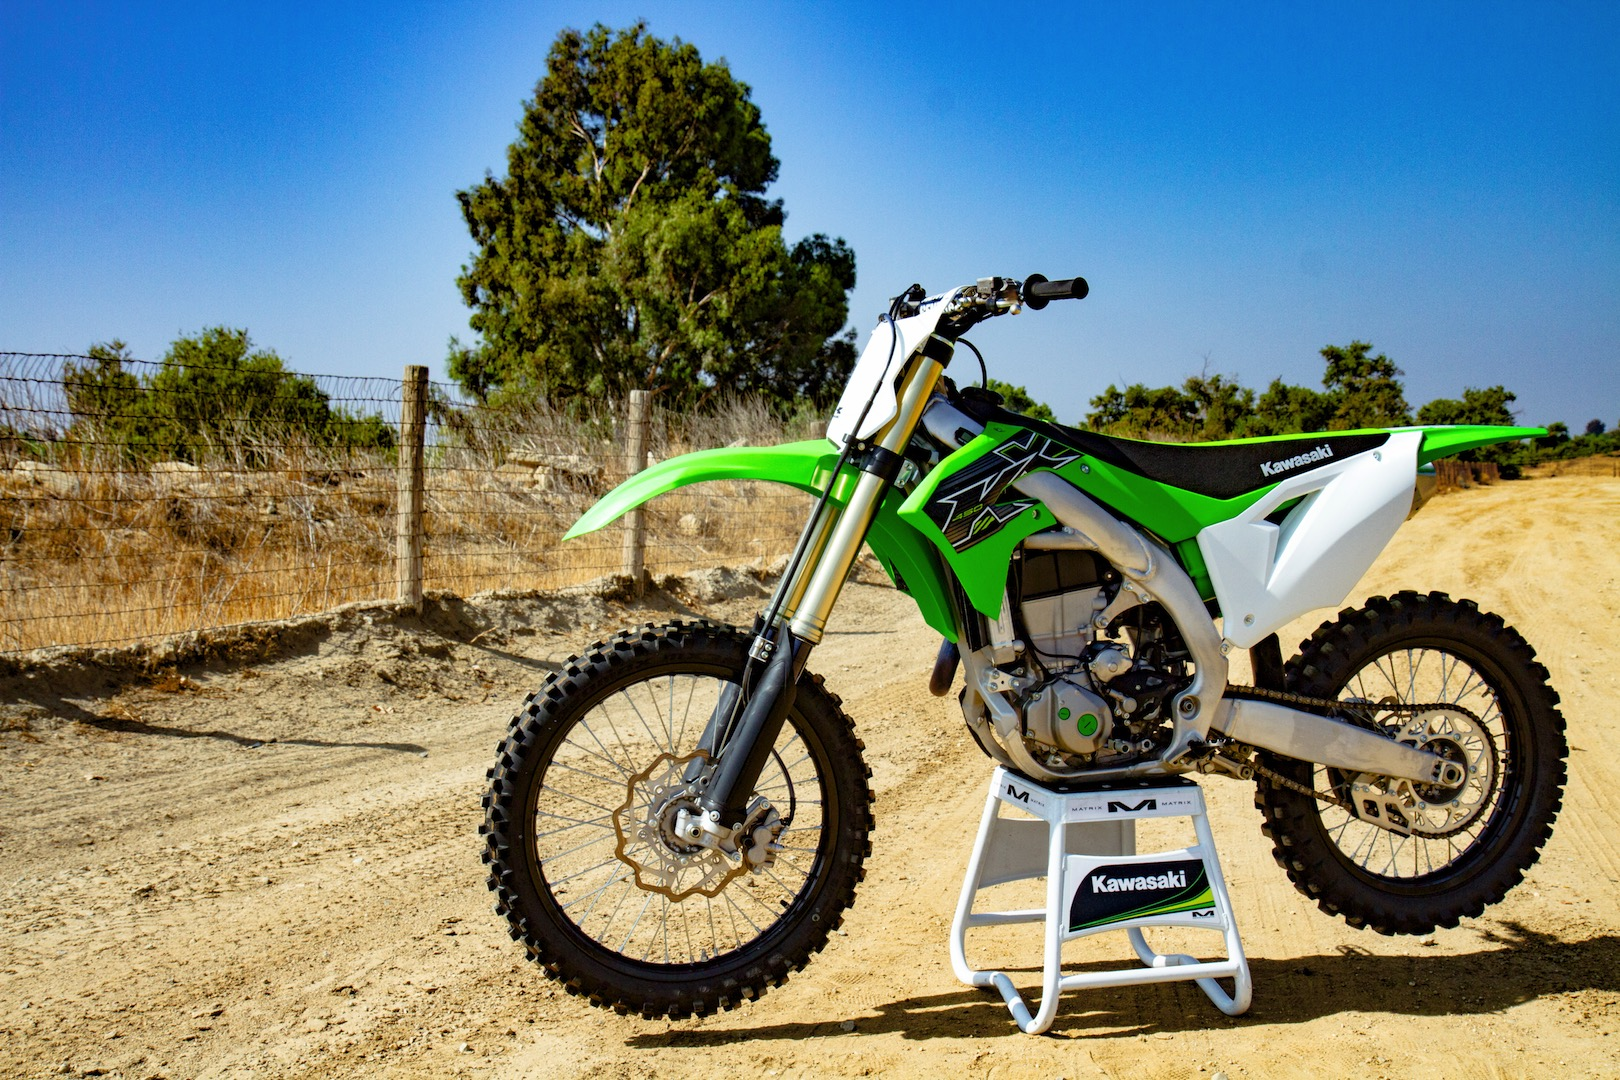 2019 Kawasaki KX450 seat height